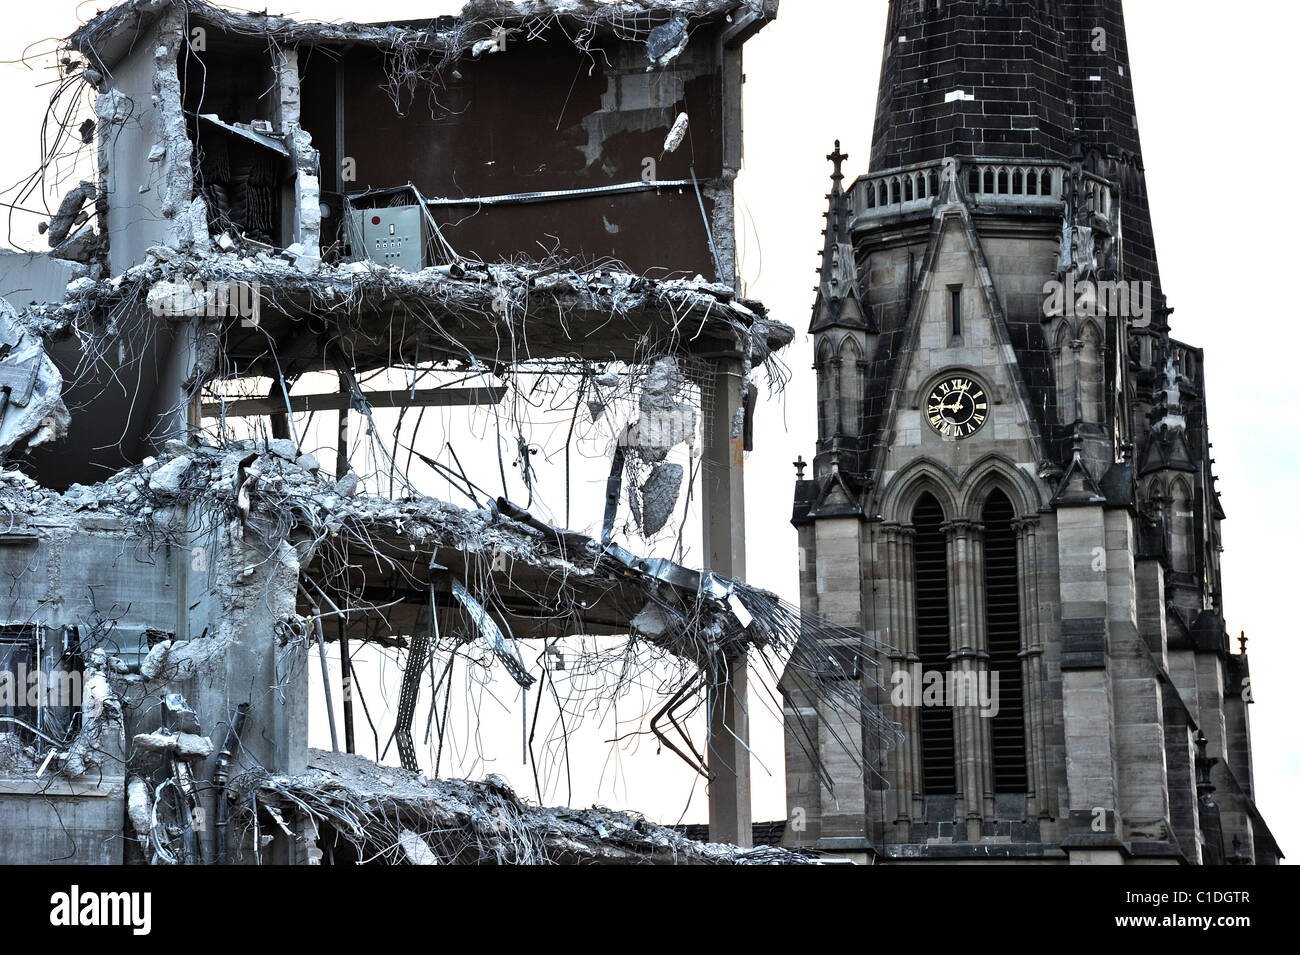 Demolition of old Building, Church in the Background, Urban Renewal - Stock Image